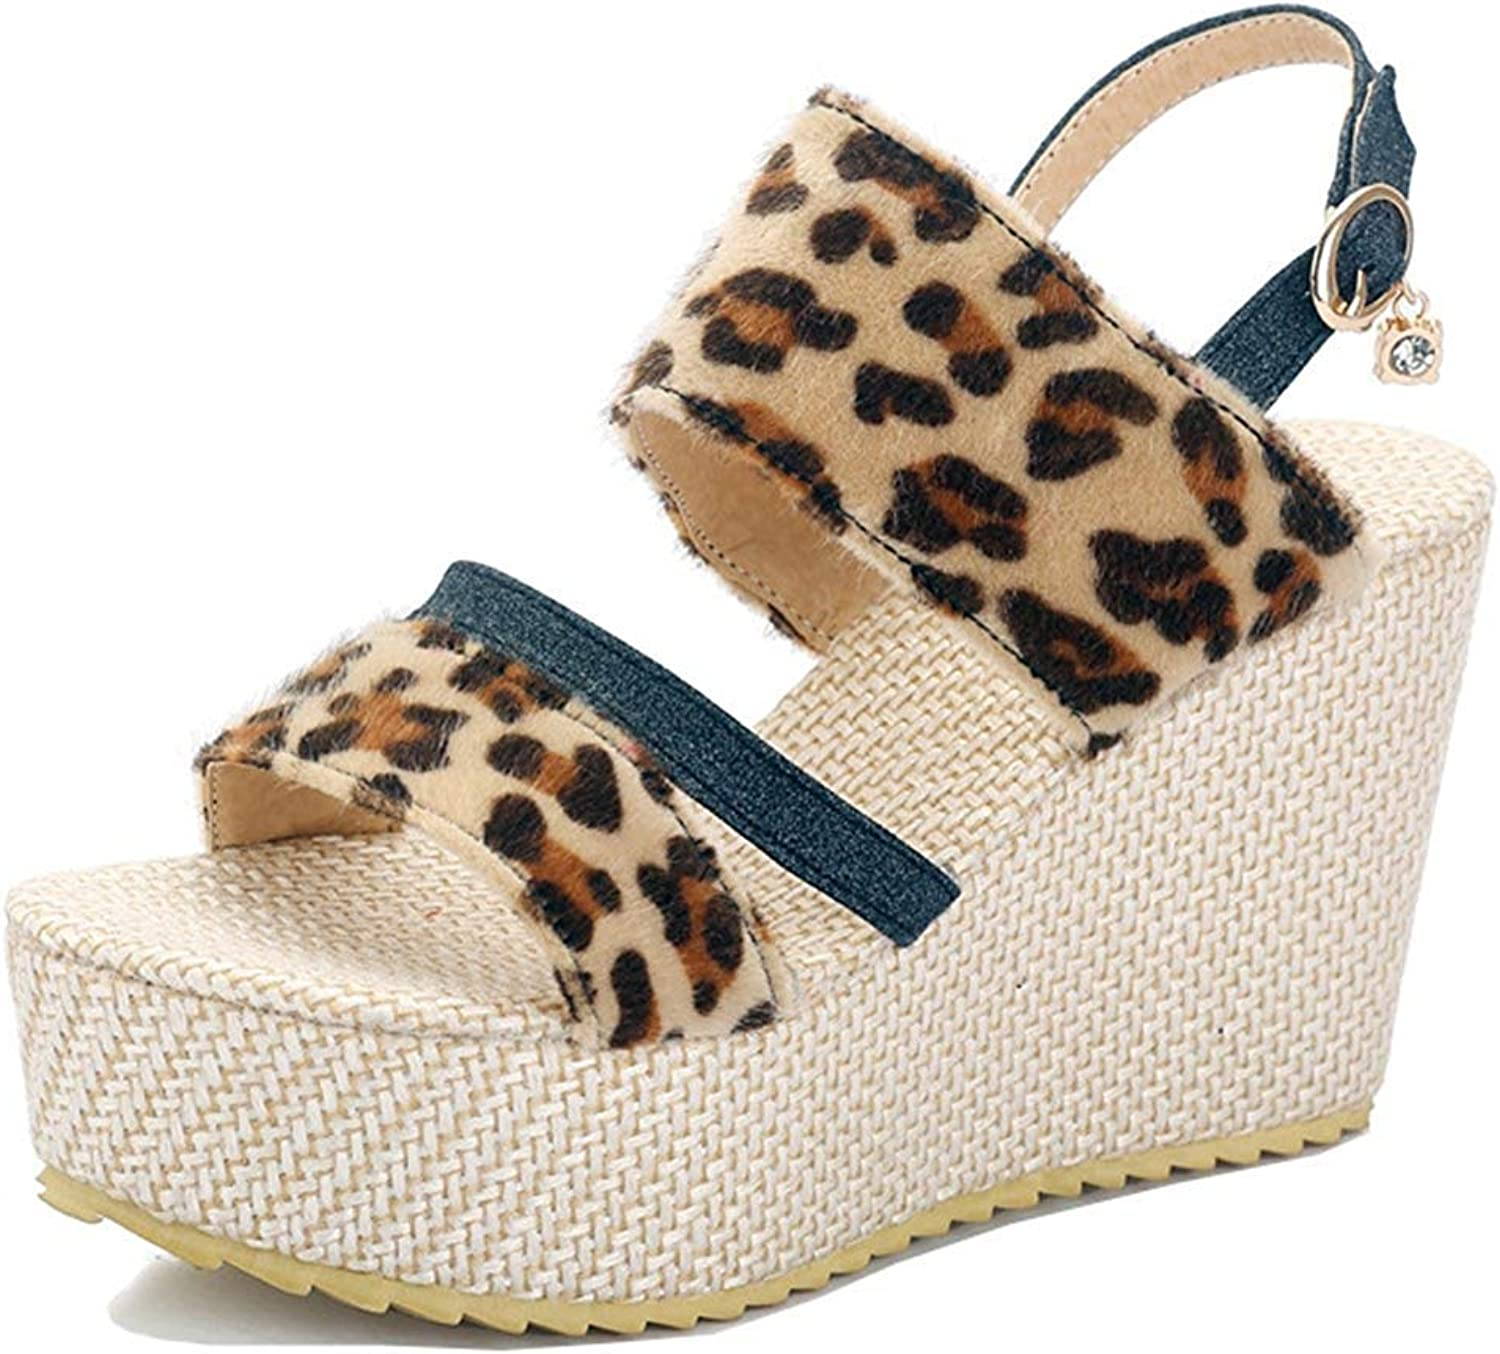 Unm Women's Espadrille Wedge Sandals with Buckle - Platform Open Toe High Heels - Leopard Ankle Strap